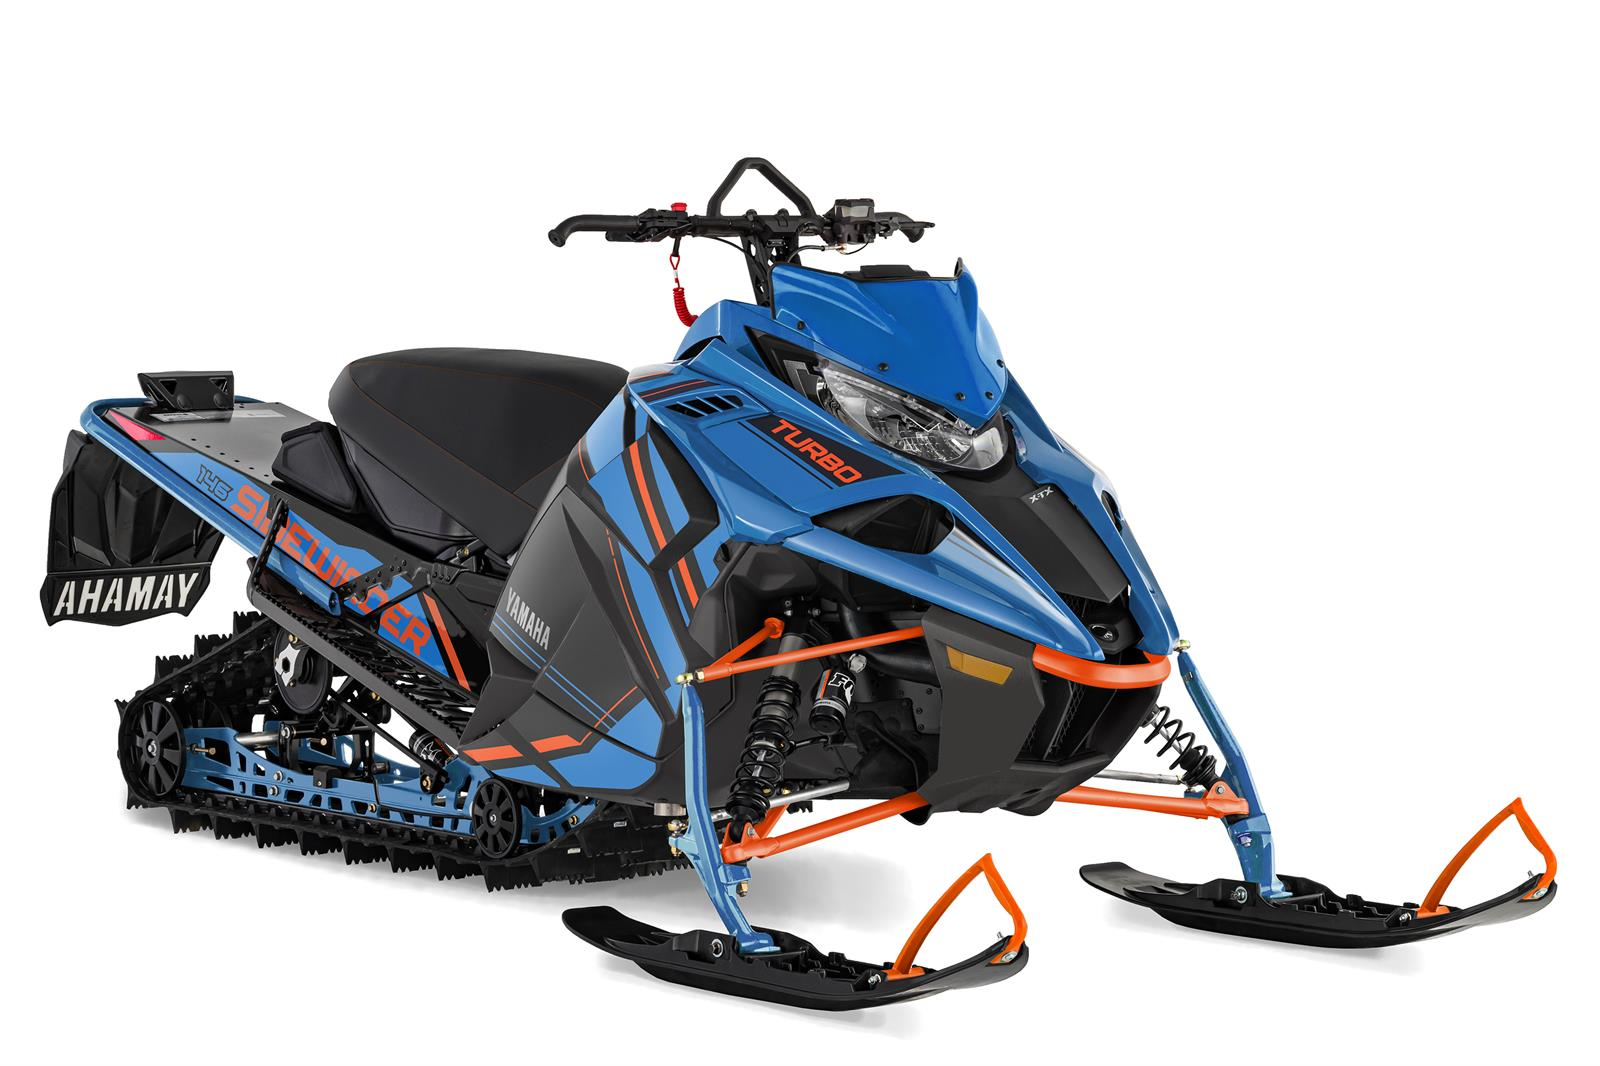 2022 Yamaha Sidewinder X-TX SE 146 in Escanaba, Michigan - Photo 2